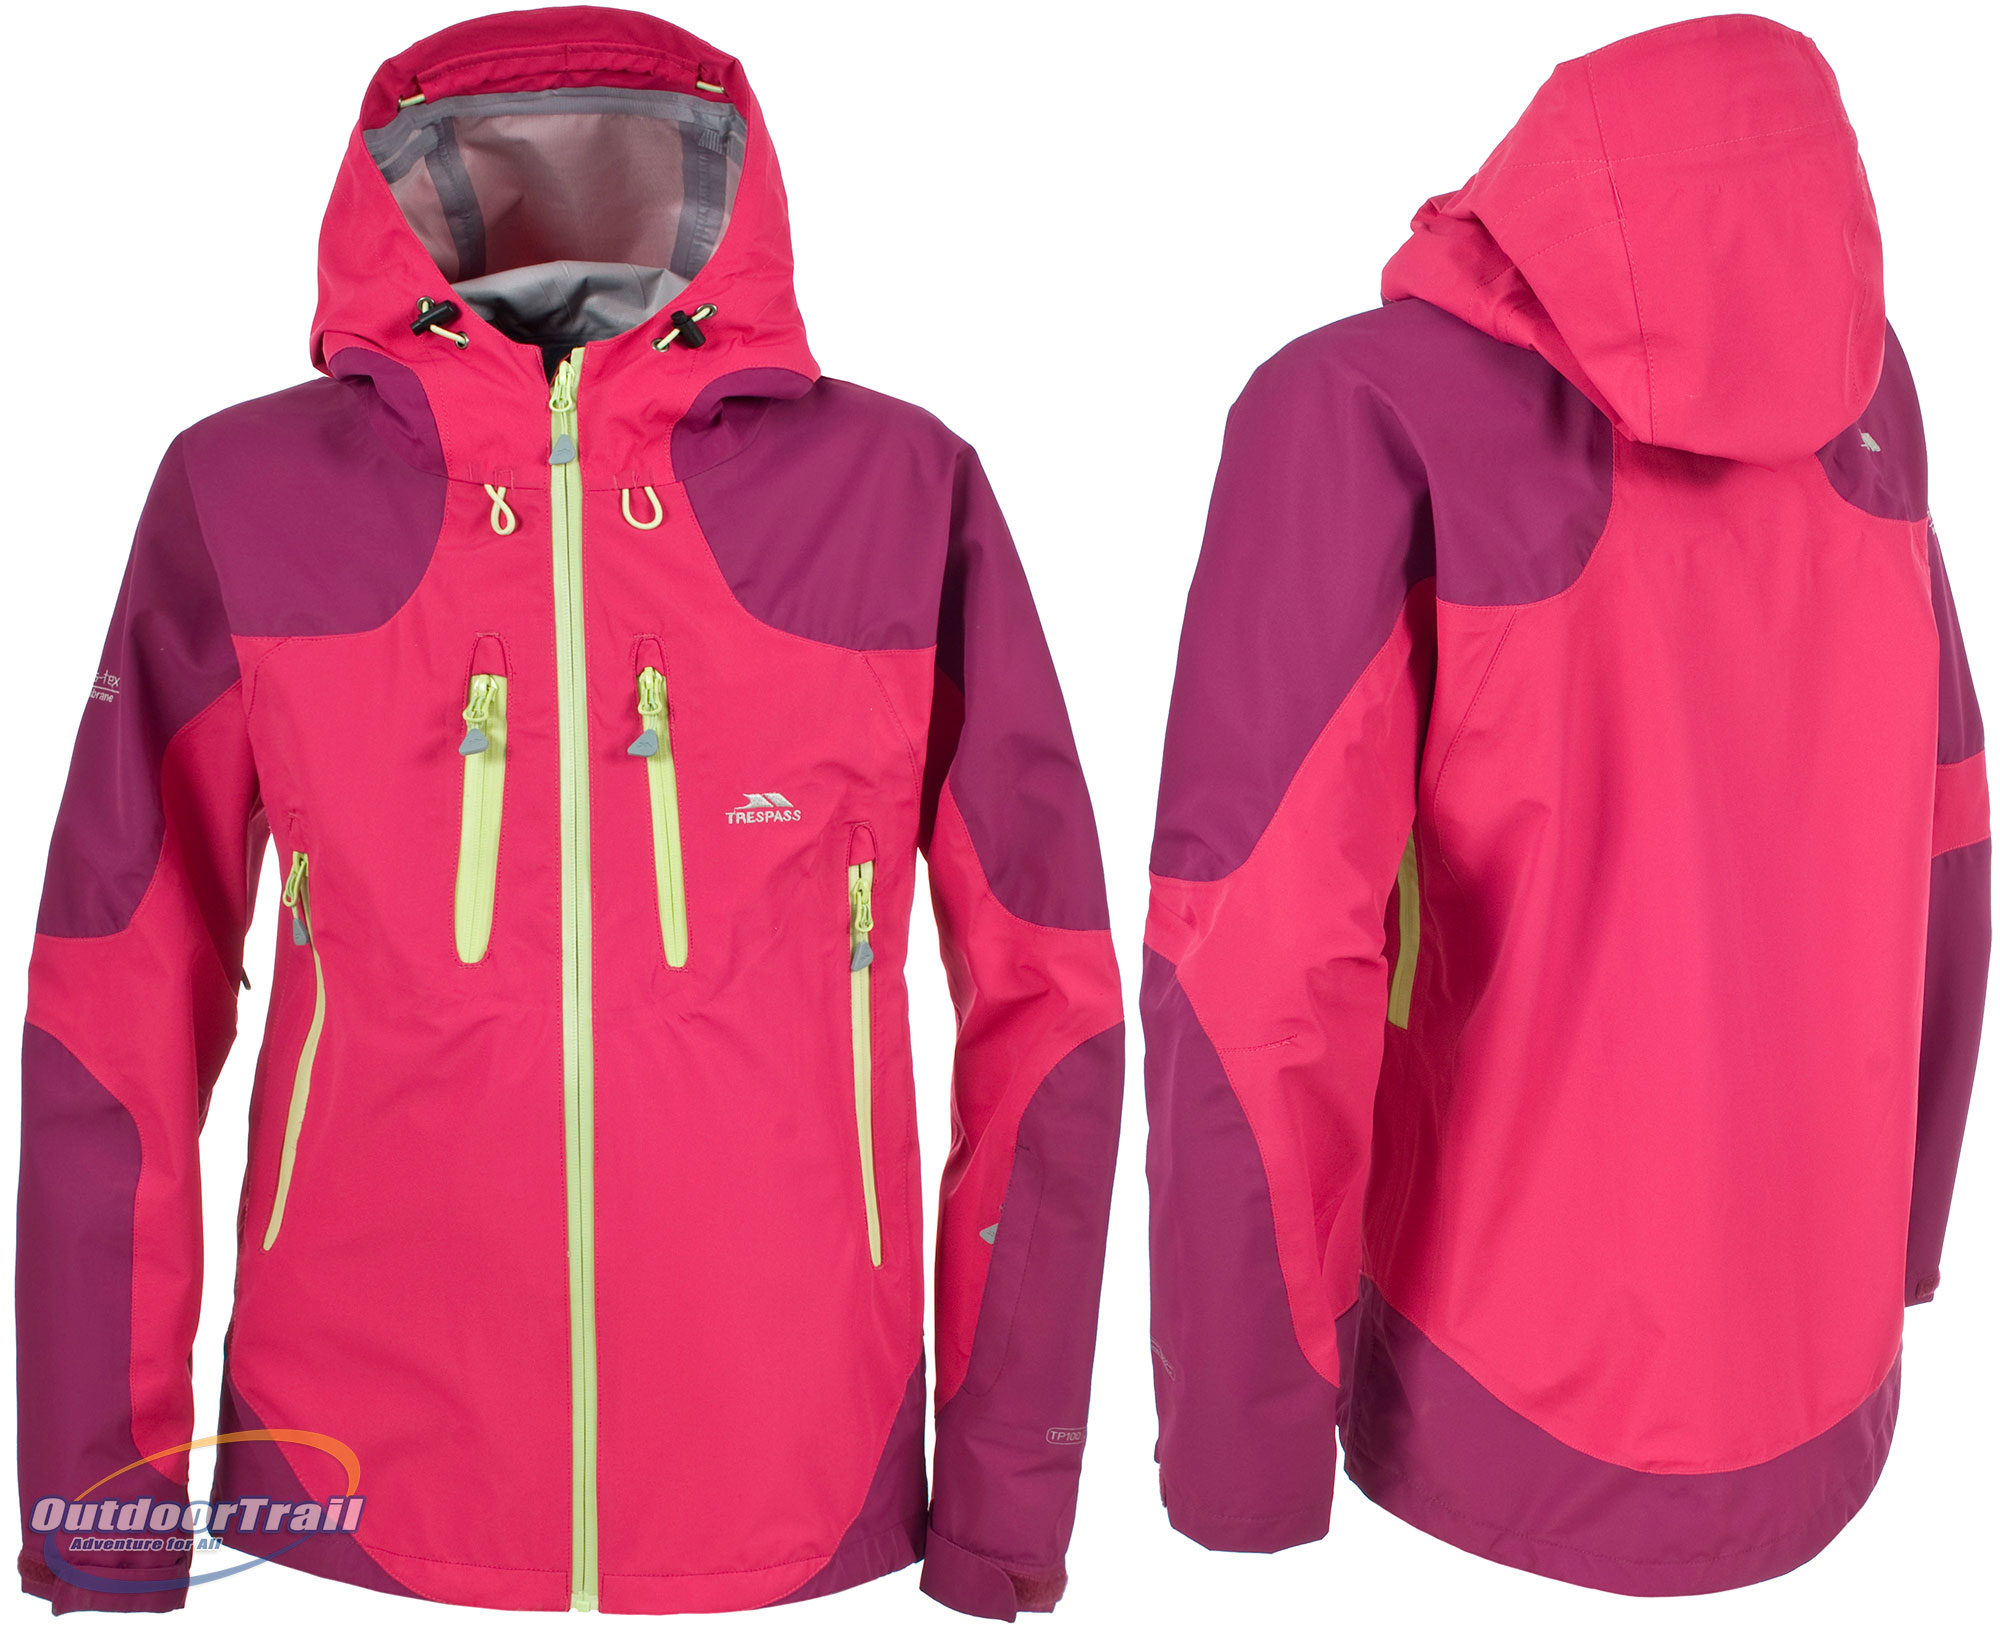 Womens Waterproof Hiking Jacket | Outdoor Jacket